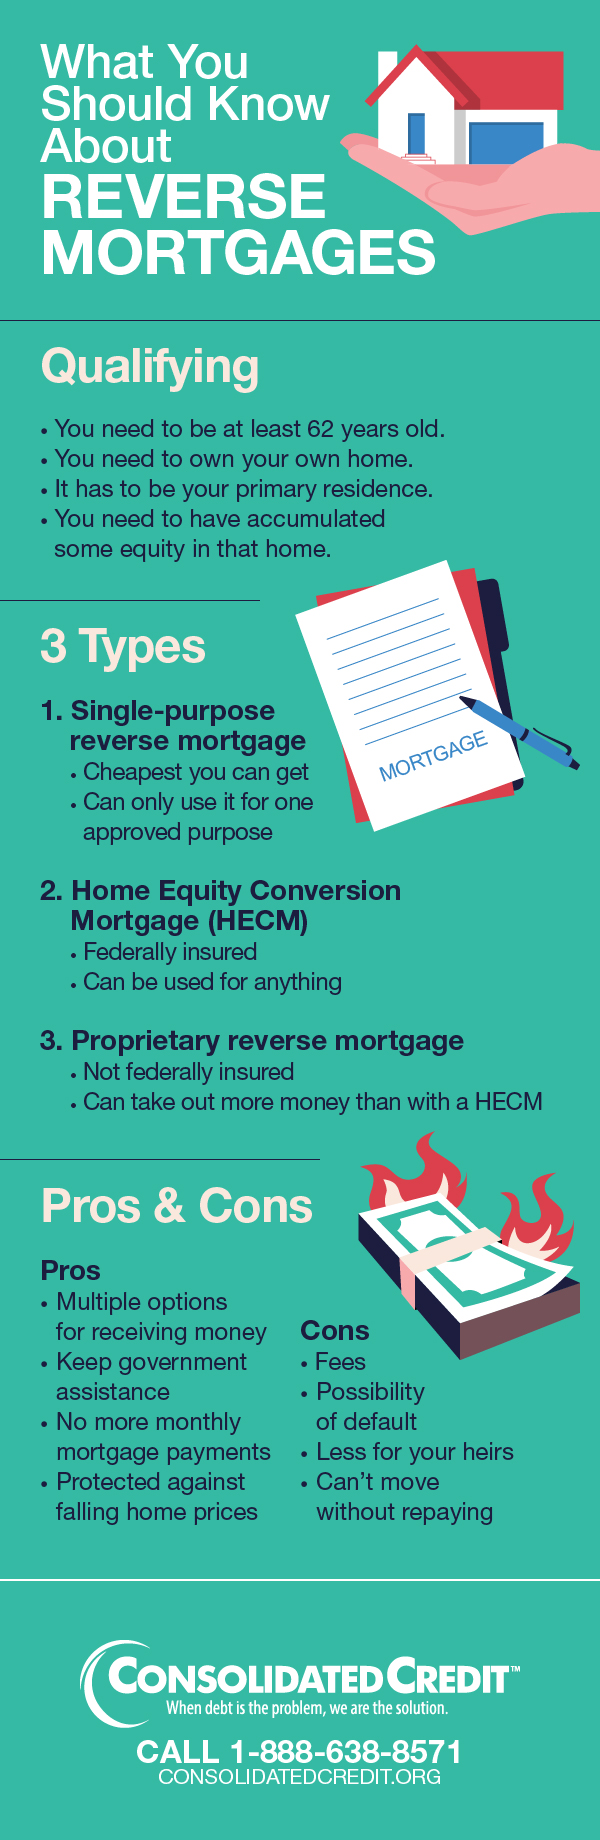 reverse mortgages webinar